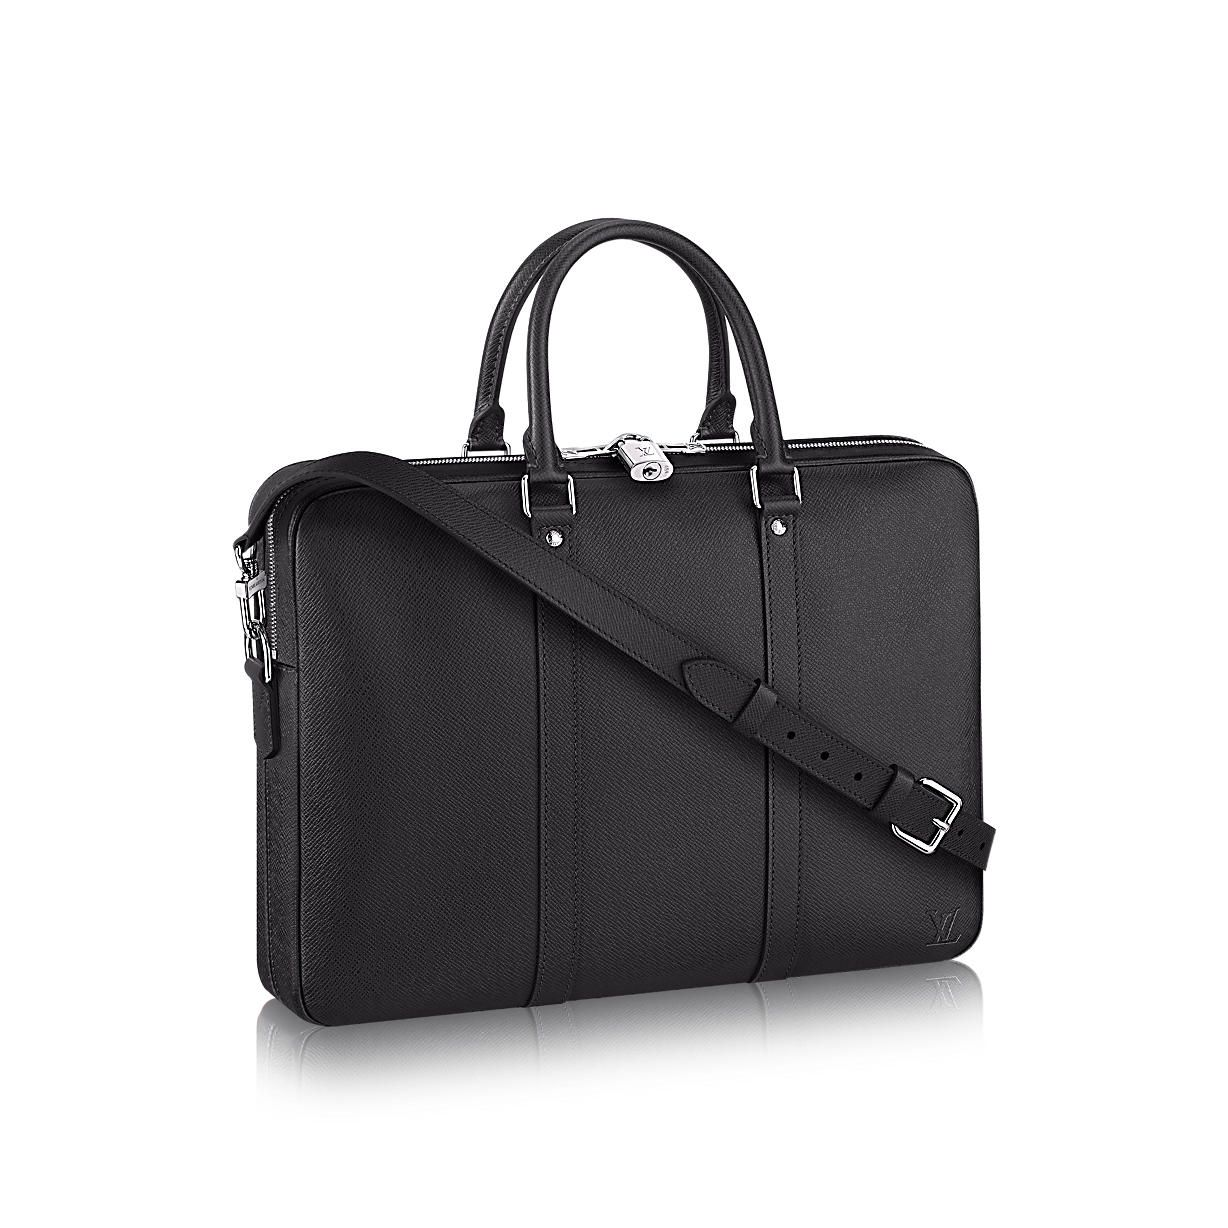 Porte-Documents Voyage PM Taiga Leather Men Men s Bags  904315bf9ade6